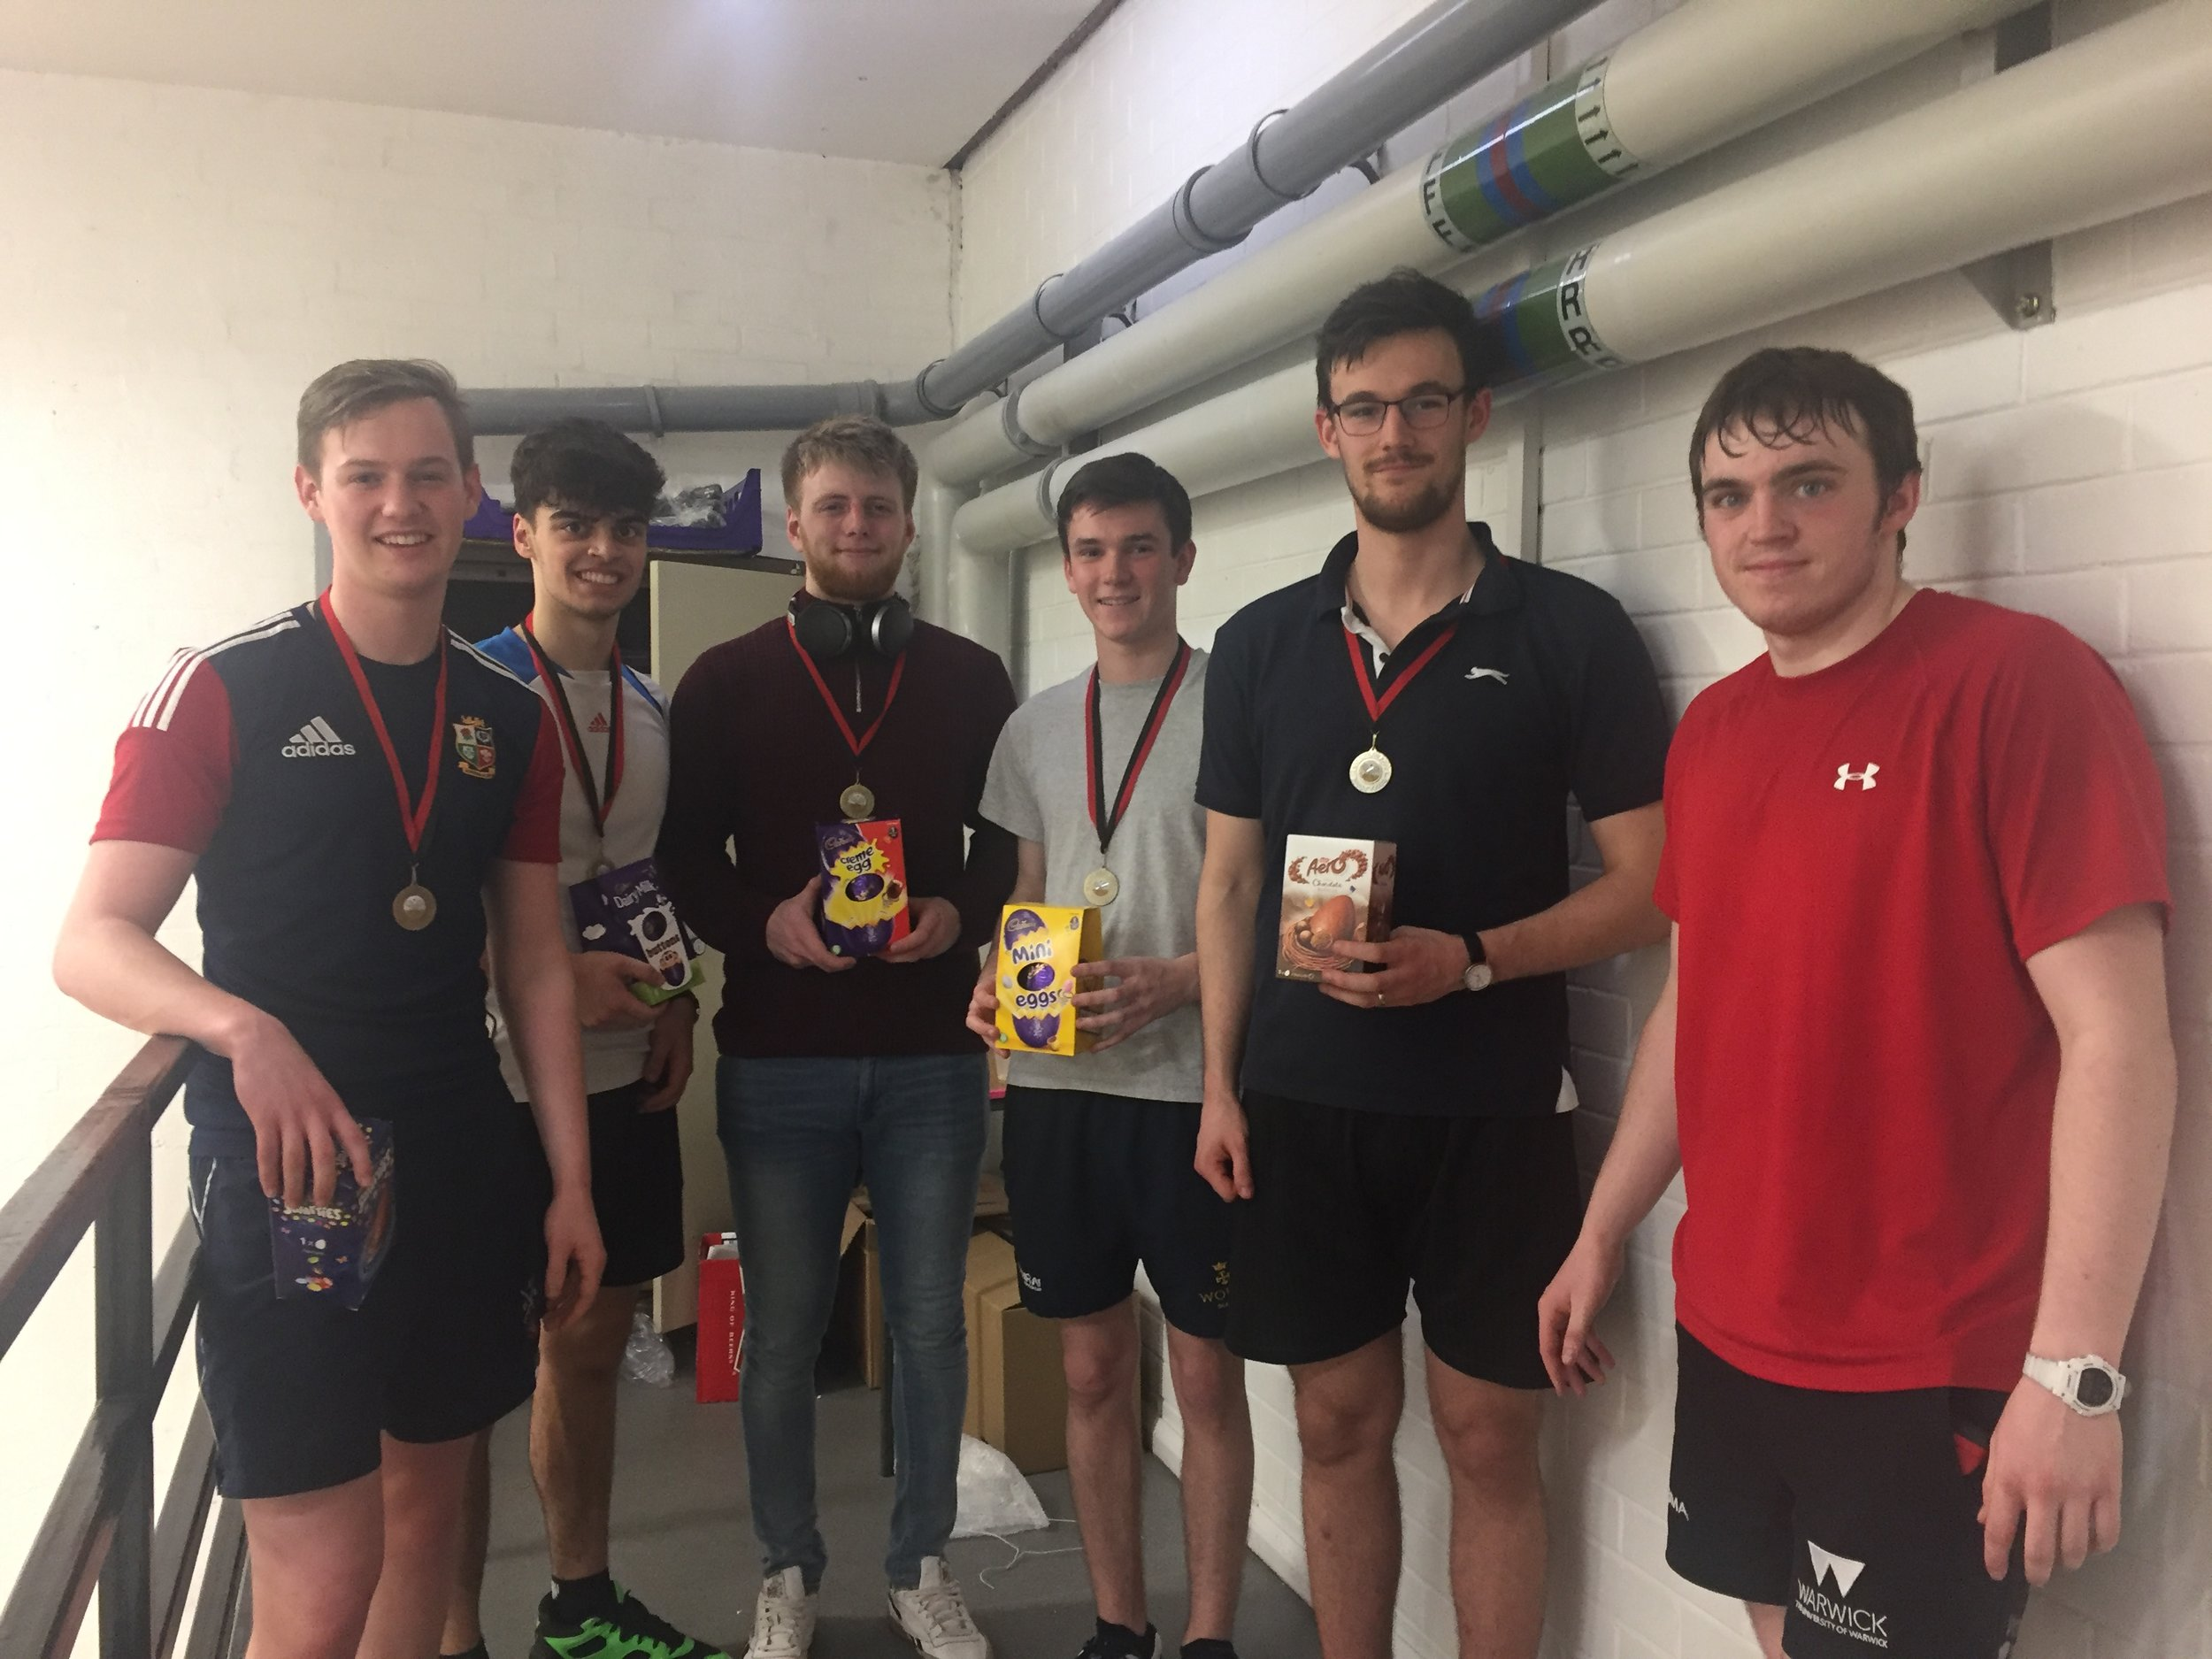 'Squish Sqwash Squash' (Team 8) - Winners of WarwickSquash Internal League 2019